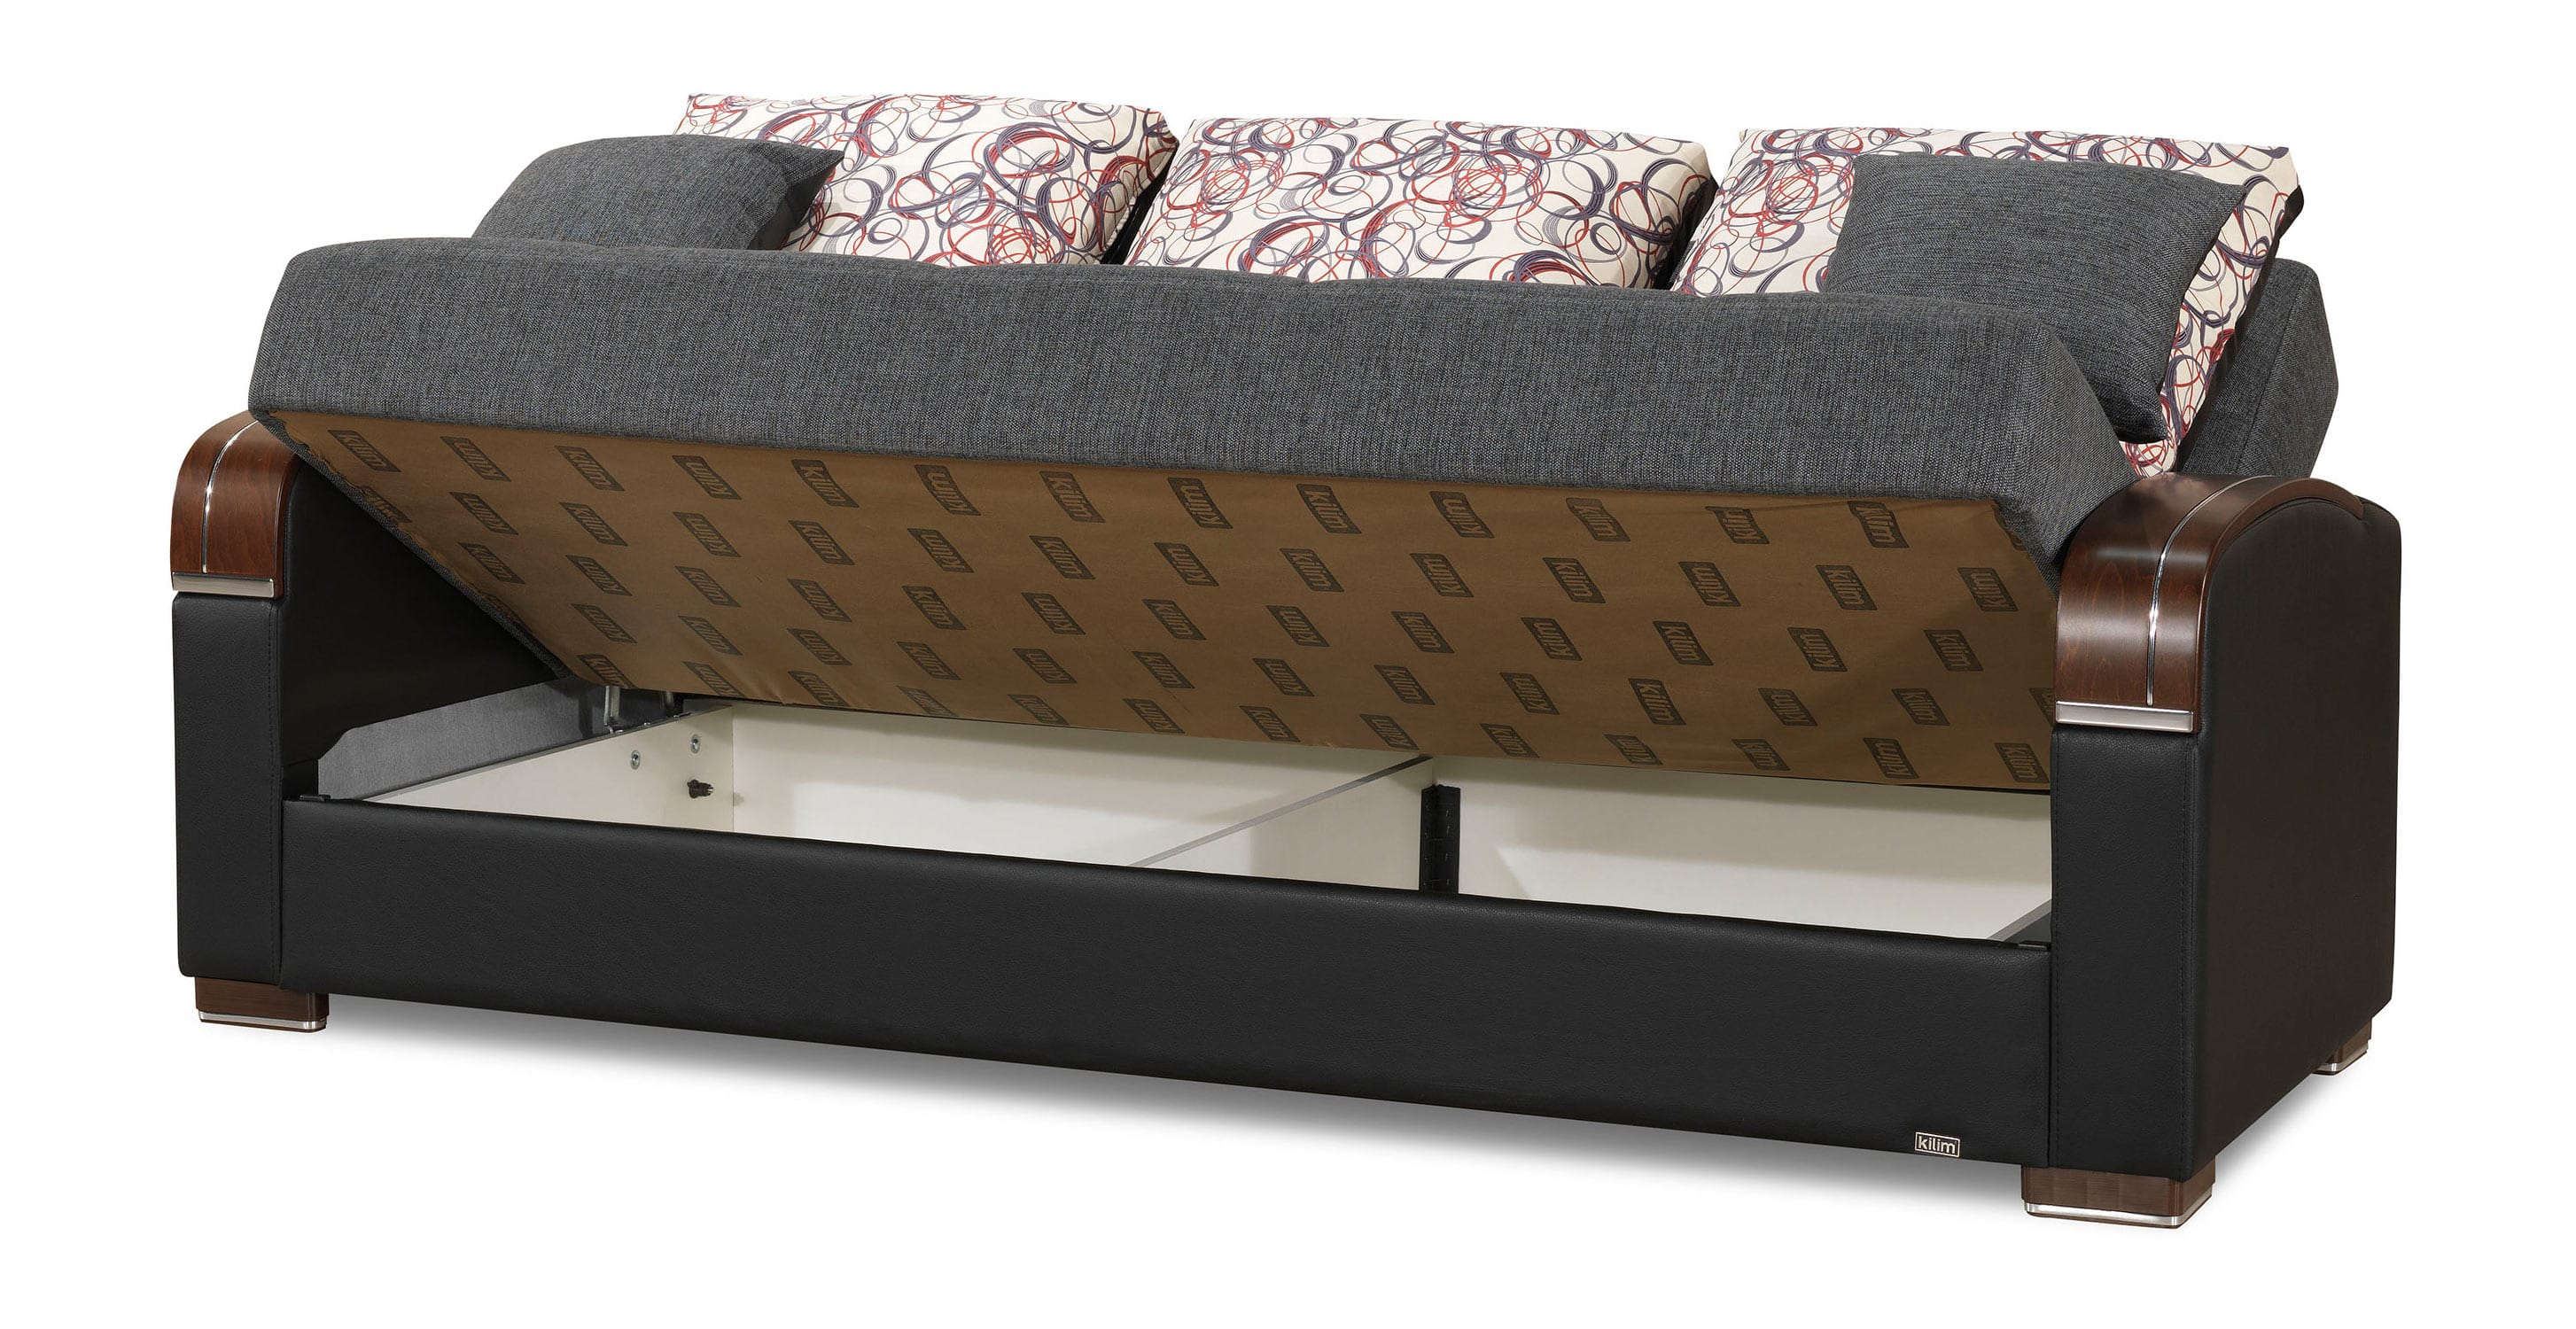 Mobimax Gray Convertible Sofa Bed by Casamode